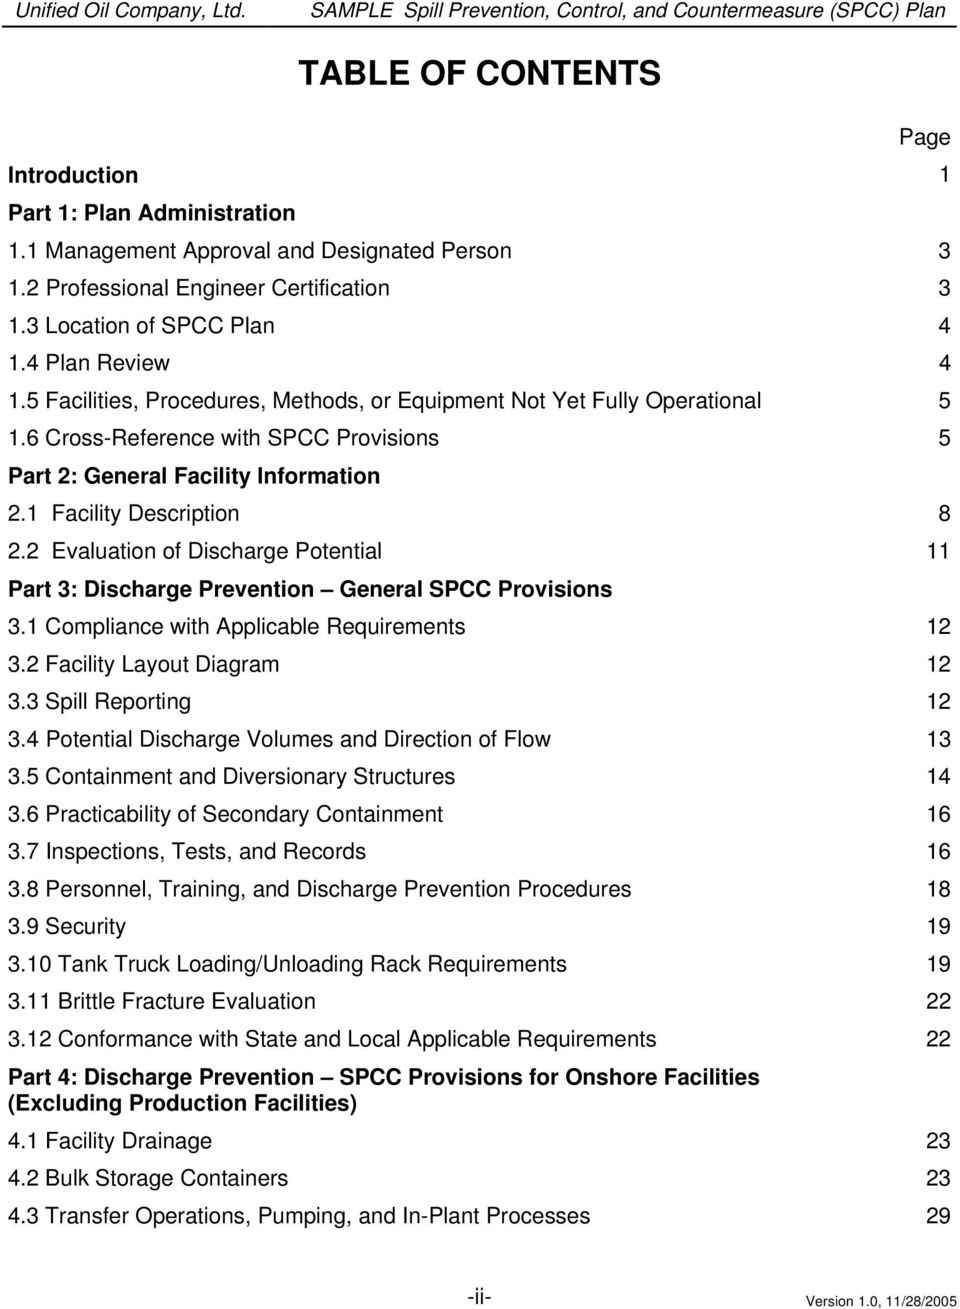 1 Facility Description 8 2.2 Evaluation of Discharge Potential 11 Part 3: Discharge Prevention General SPCC Provisions 3.1 Compliance with Applicable Requirements 12 3.2 Facility Layout Diagram 12 3.